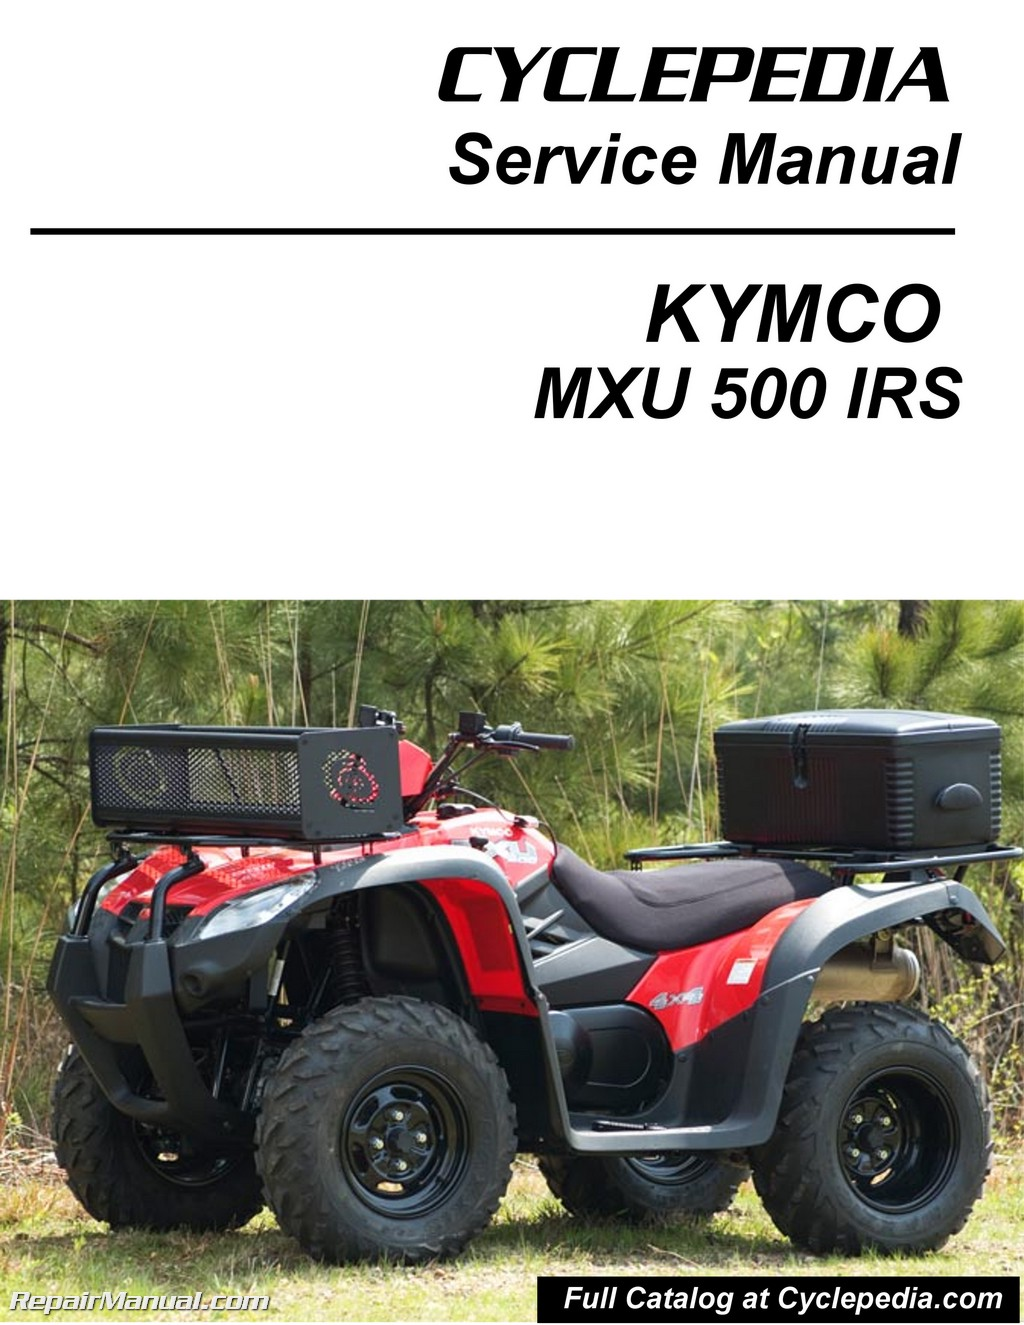 kymco mxu 500 2010 2012 atv service manual printed by cyclepedia rh repairmanual com kymco mxu 500 irs service manual Kymco Xciting 500